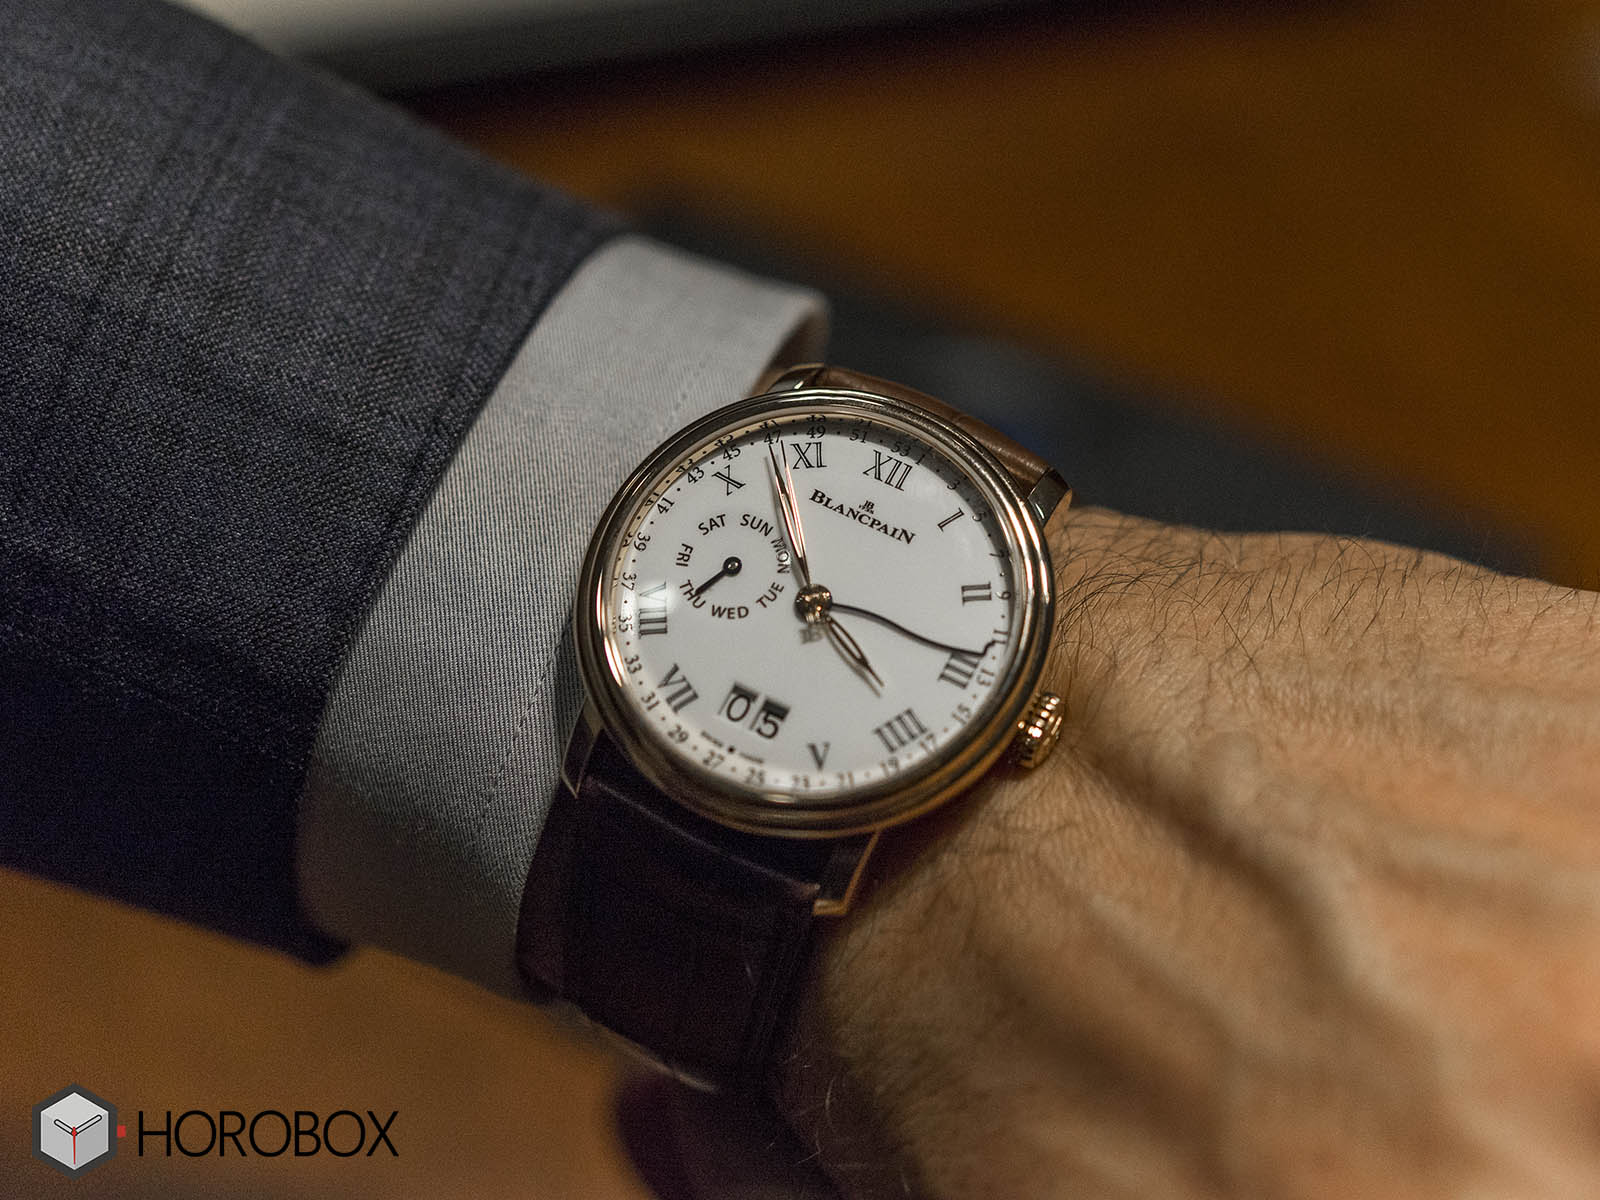 Blancpain-Villeret-Collection-6637-3631-55B-5.jpg